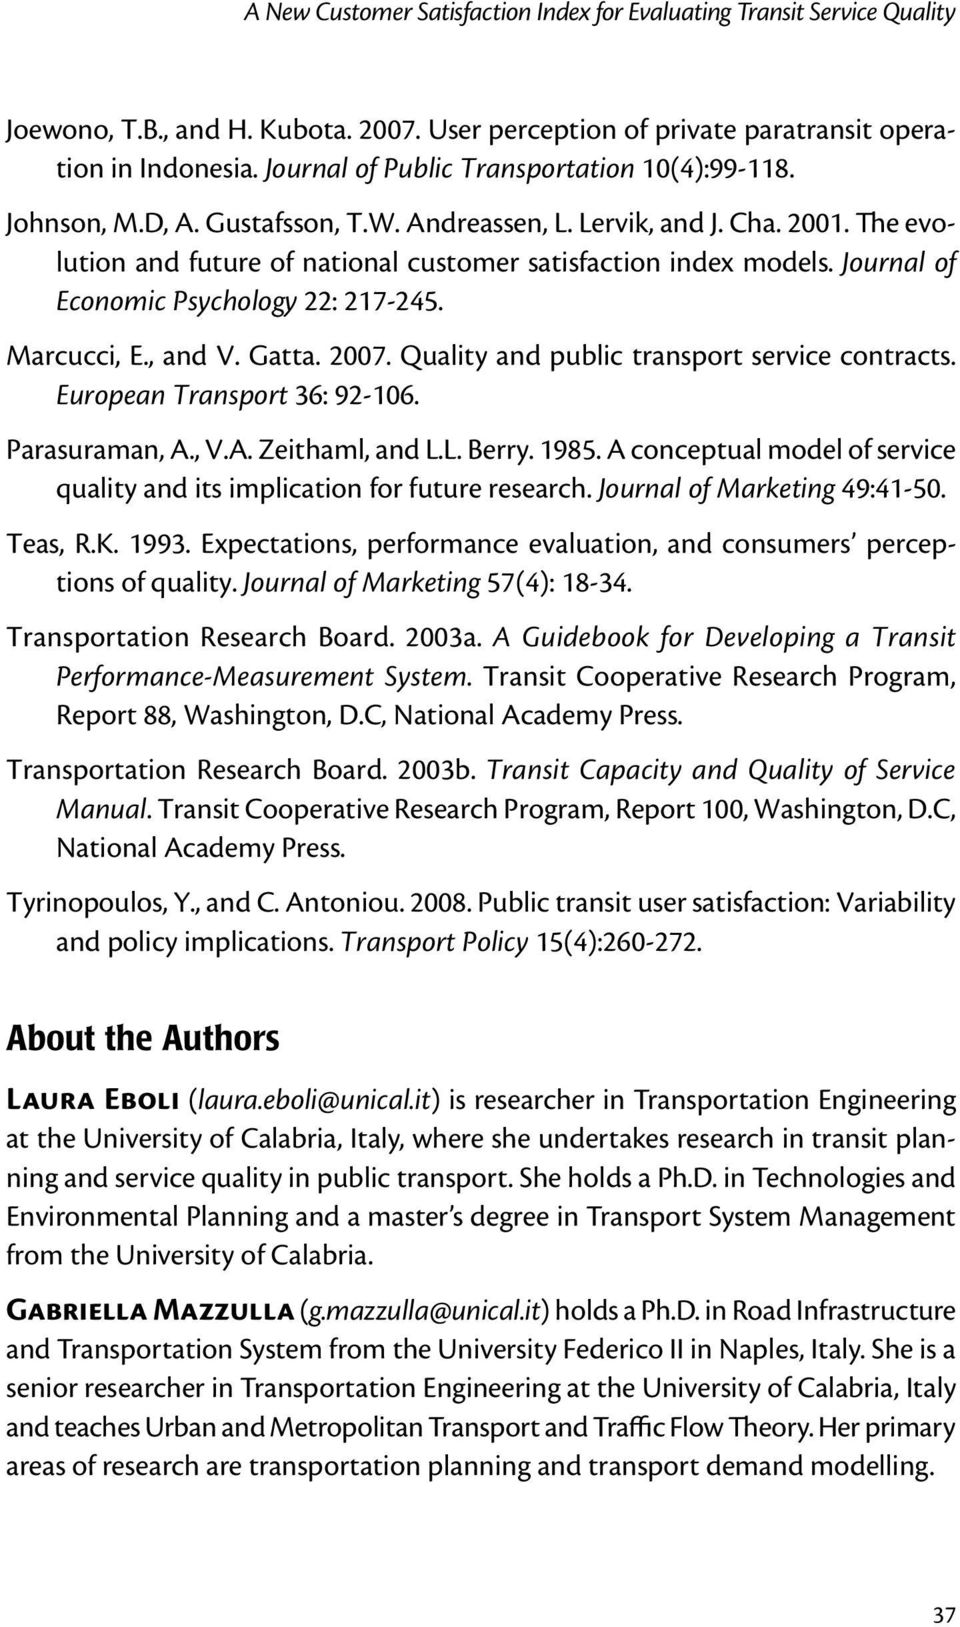 Quality and public transport service contracts. European Transport 36: 92-106. Parasuraman, A., V.A. Zeithaml, and L.L. Berry. 1985.